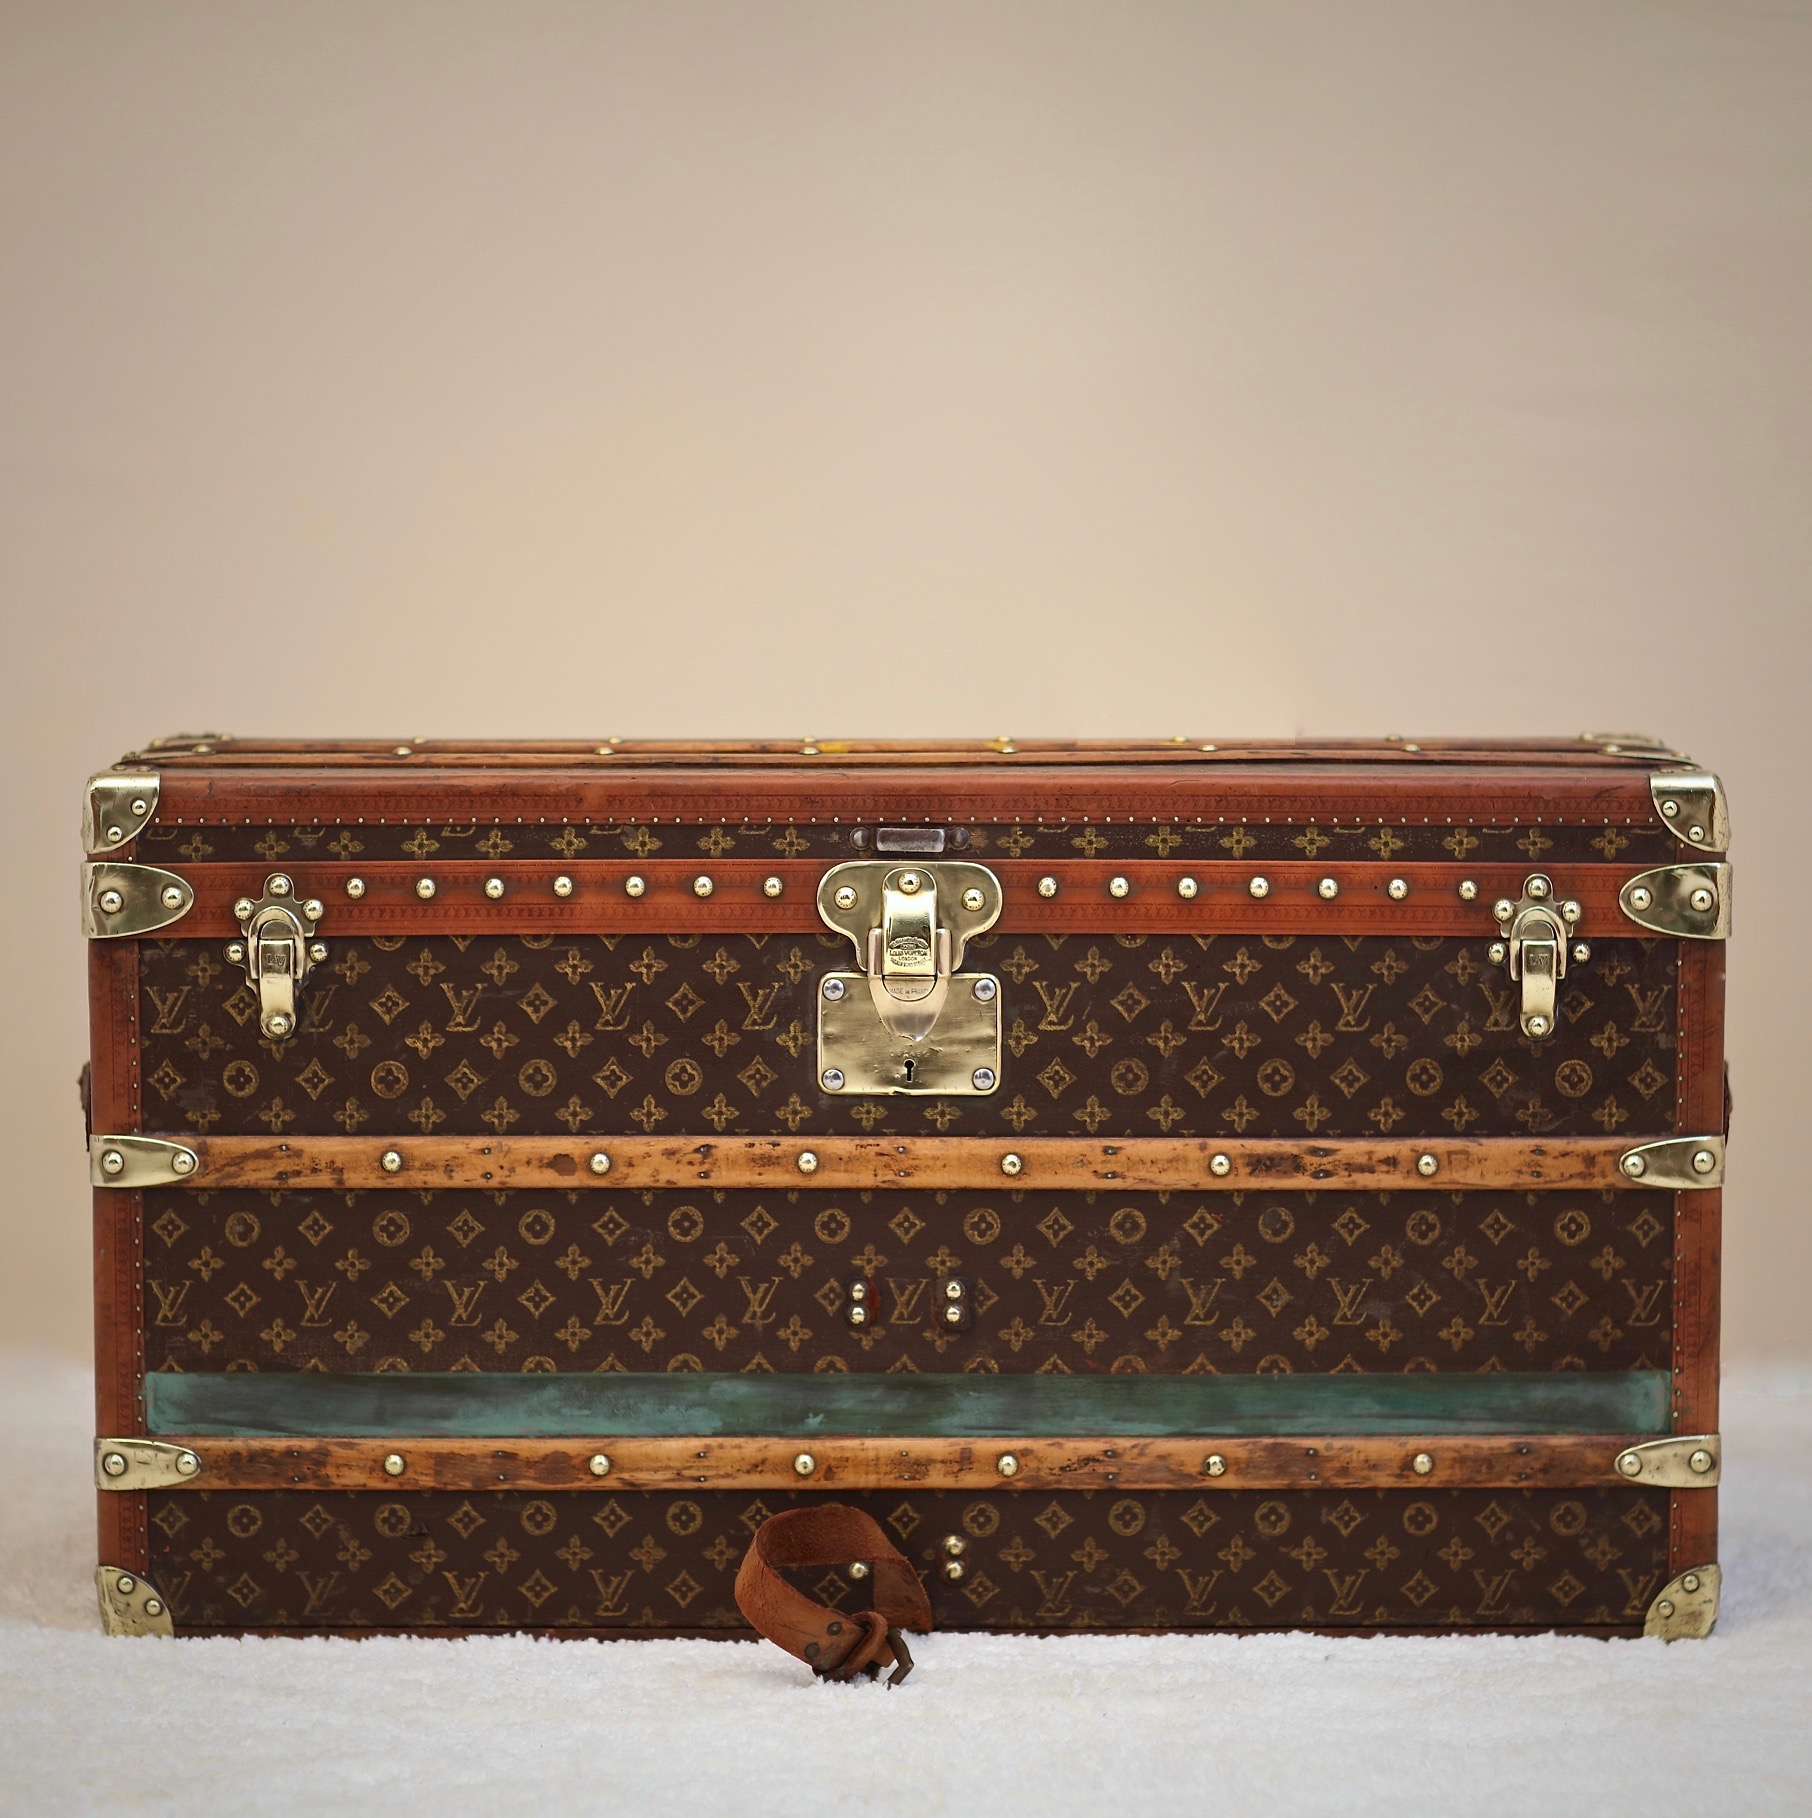 the-well-traveled-trunk-louis-vuitton-thumbnail-product-5653ABC